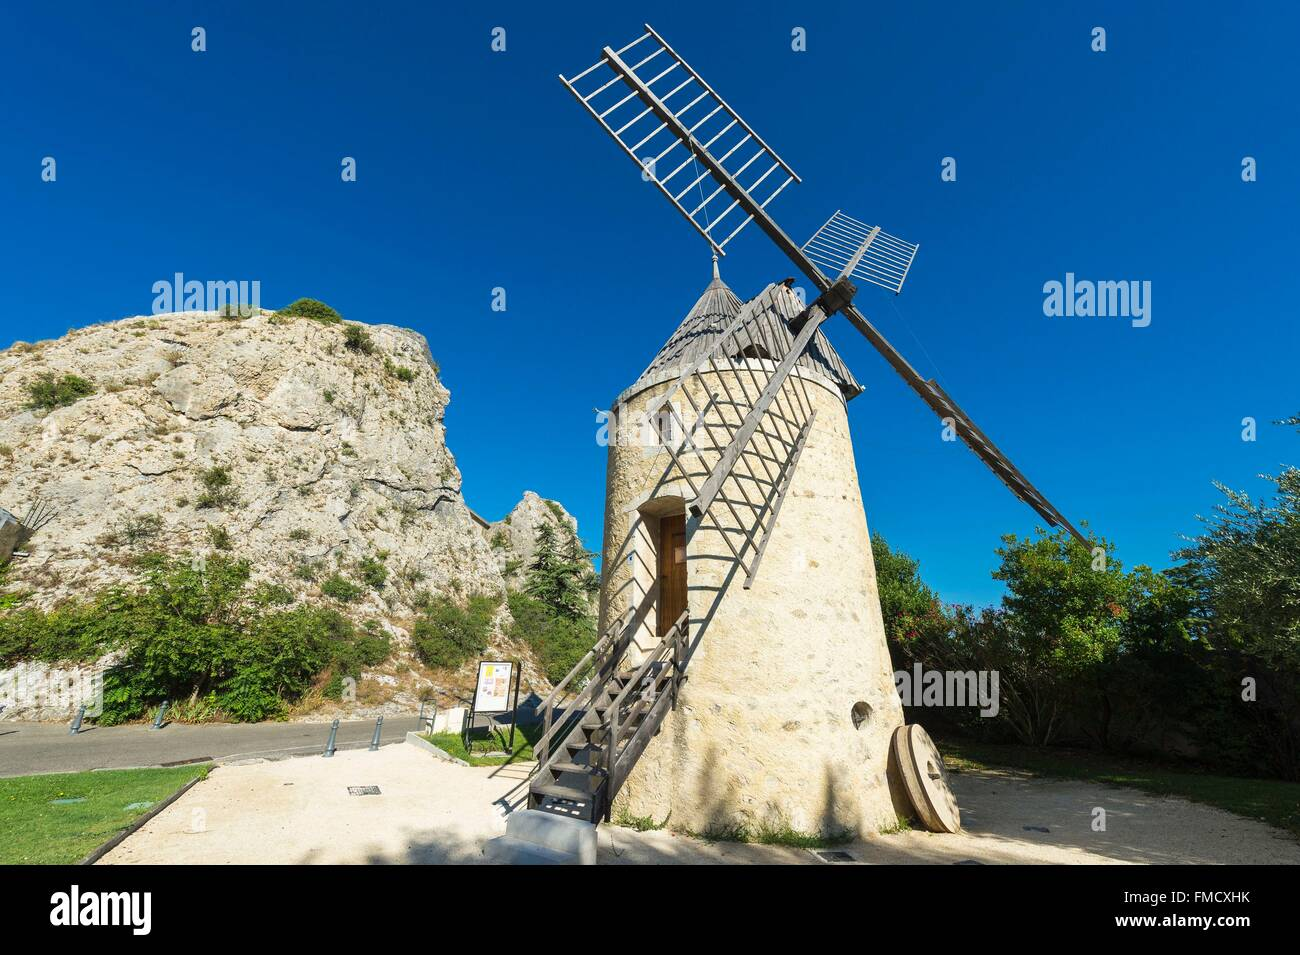 France, Drome, Pierrelatte, Wind Mill built around 1839 and the Rock - Stock Image